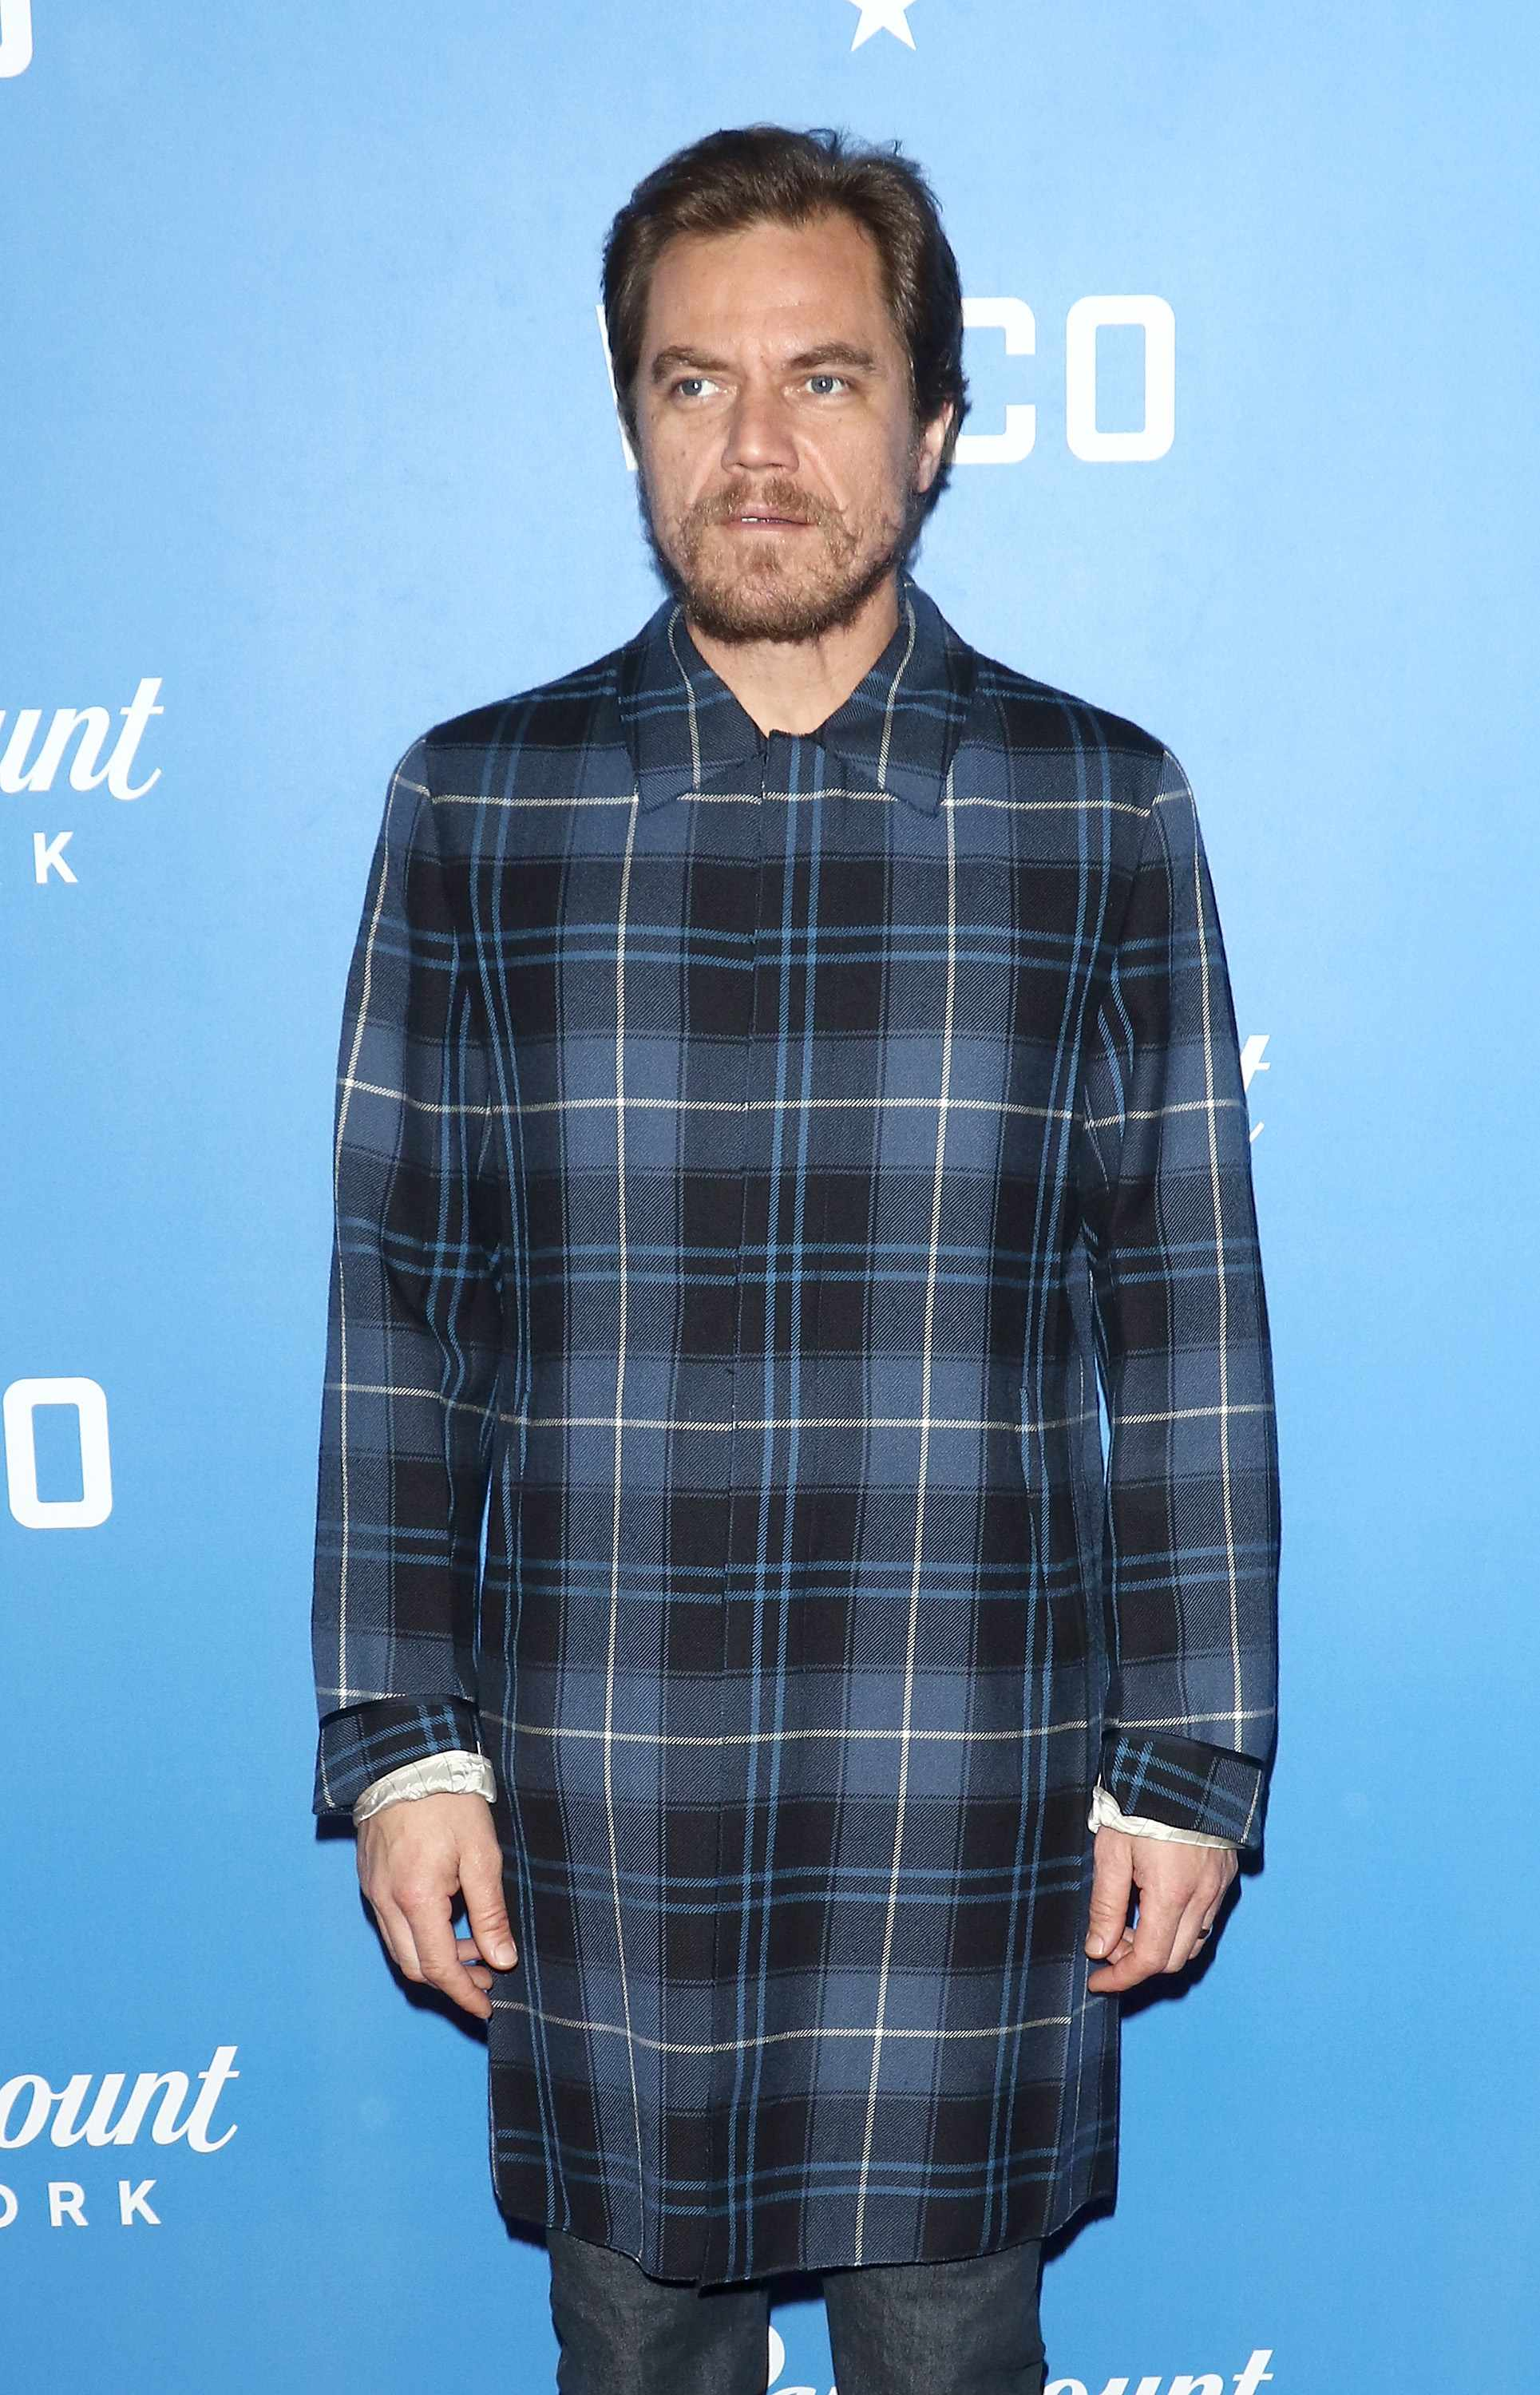 """NEW YORK, NY - JANUARY 22:  Actor Michael Shannon attends the """"Waco"""" world premiere at Jazz at Lincoln Center on January 22, 2018 in New York City.  (Photo by Jim Spellman/WireImage)  Getty, TL"""